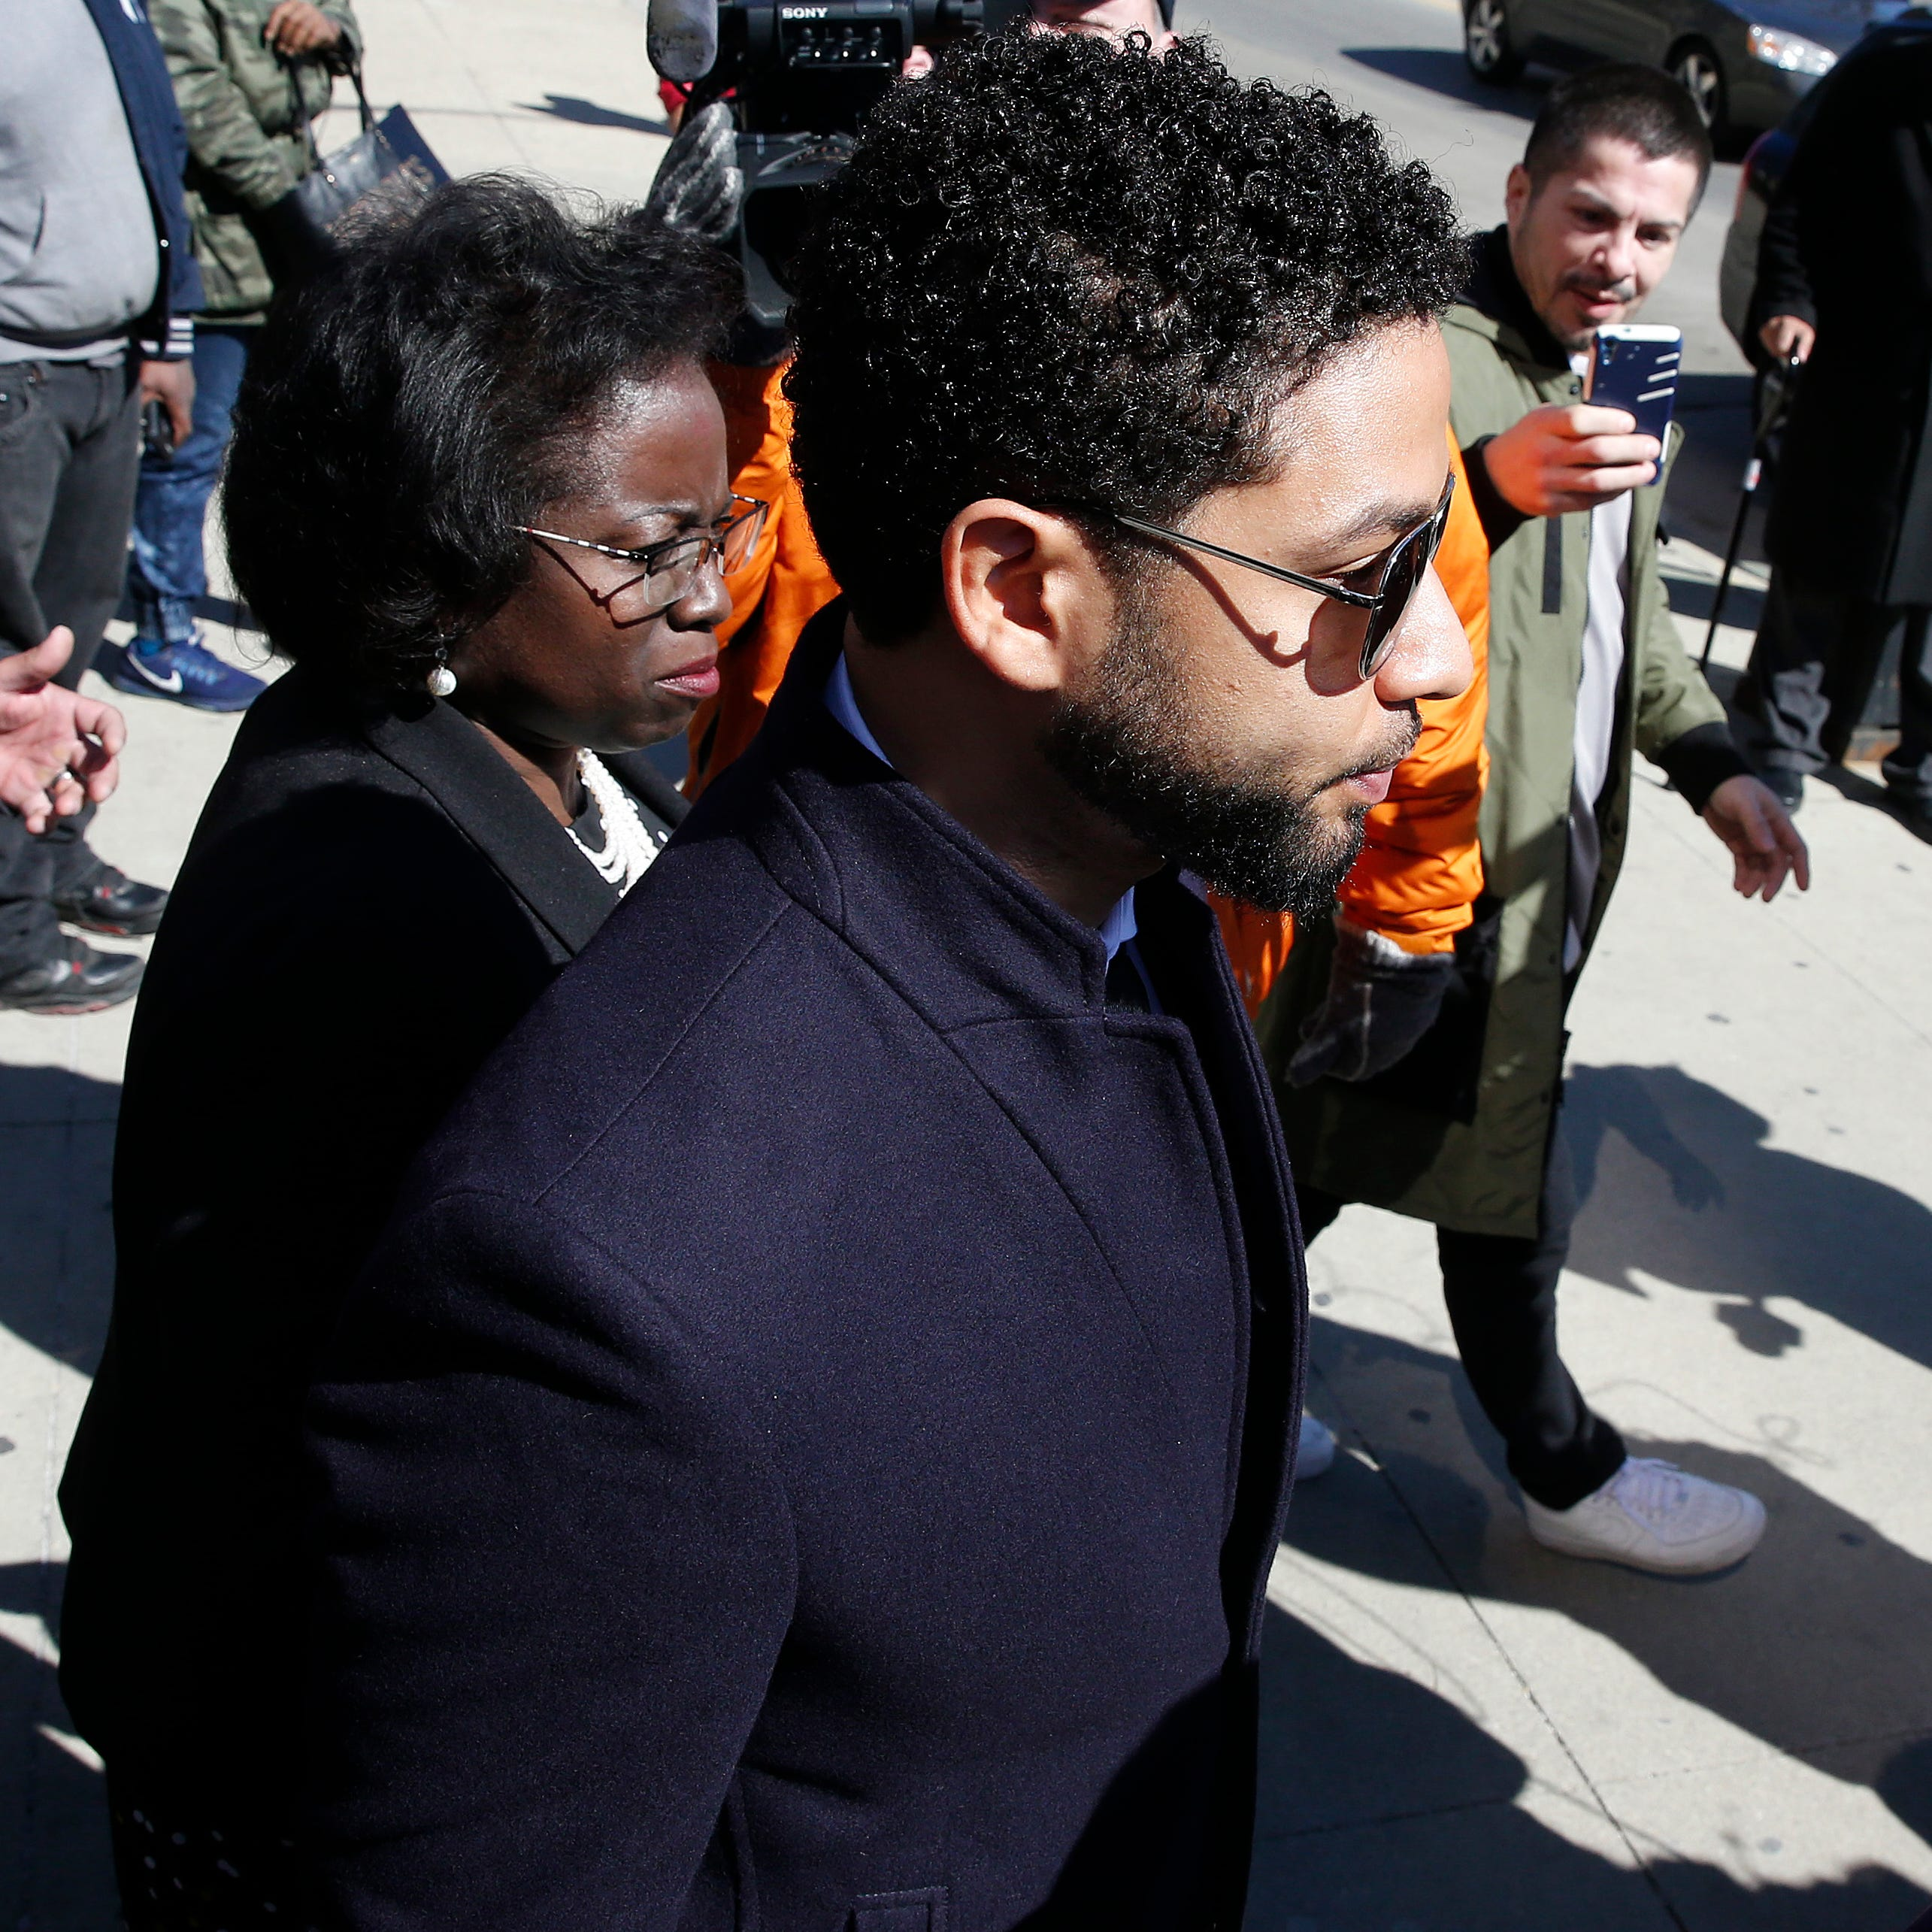 Chicago's image is muddied by crime and inequity. The Jussie Smollett case doesn't help